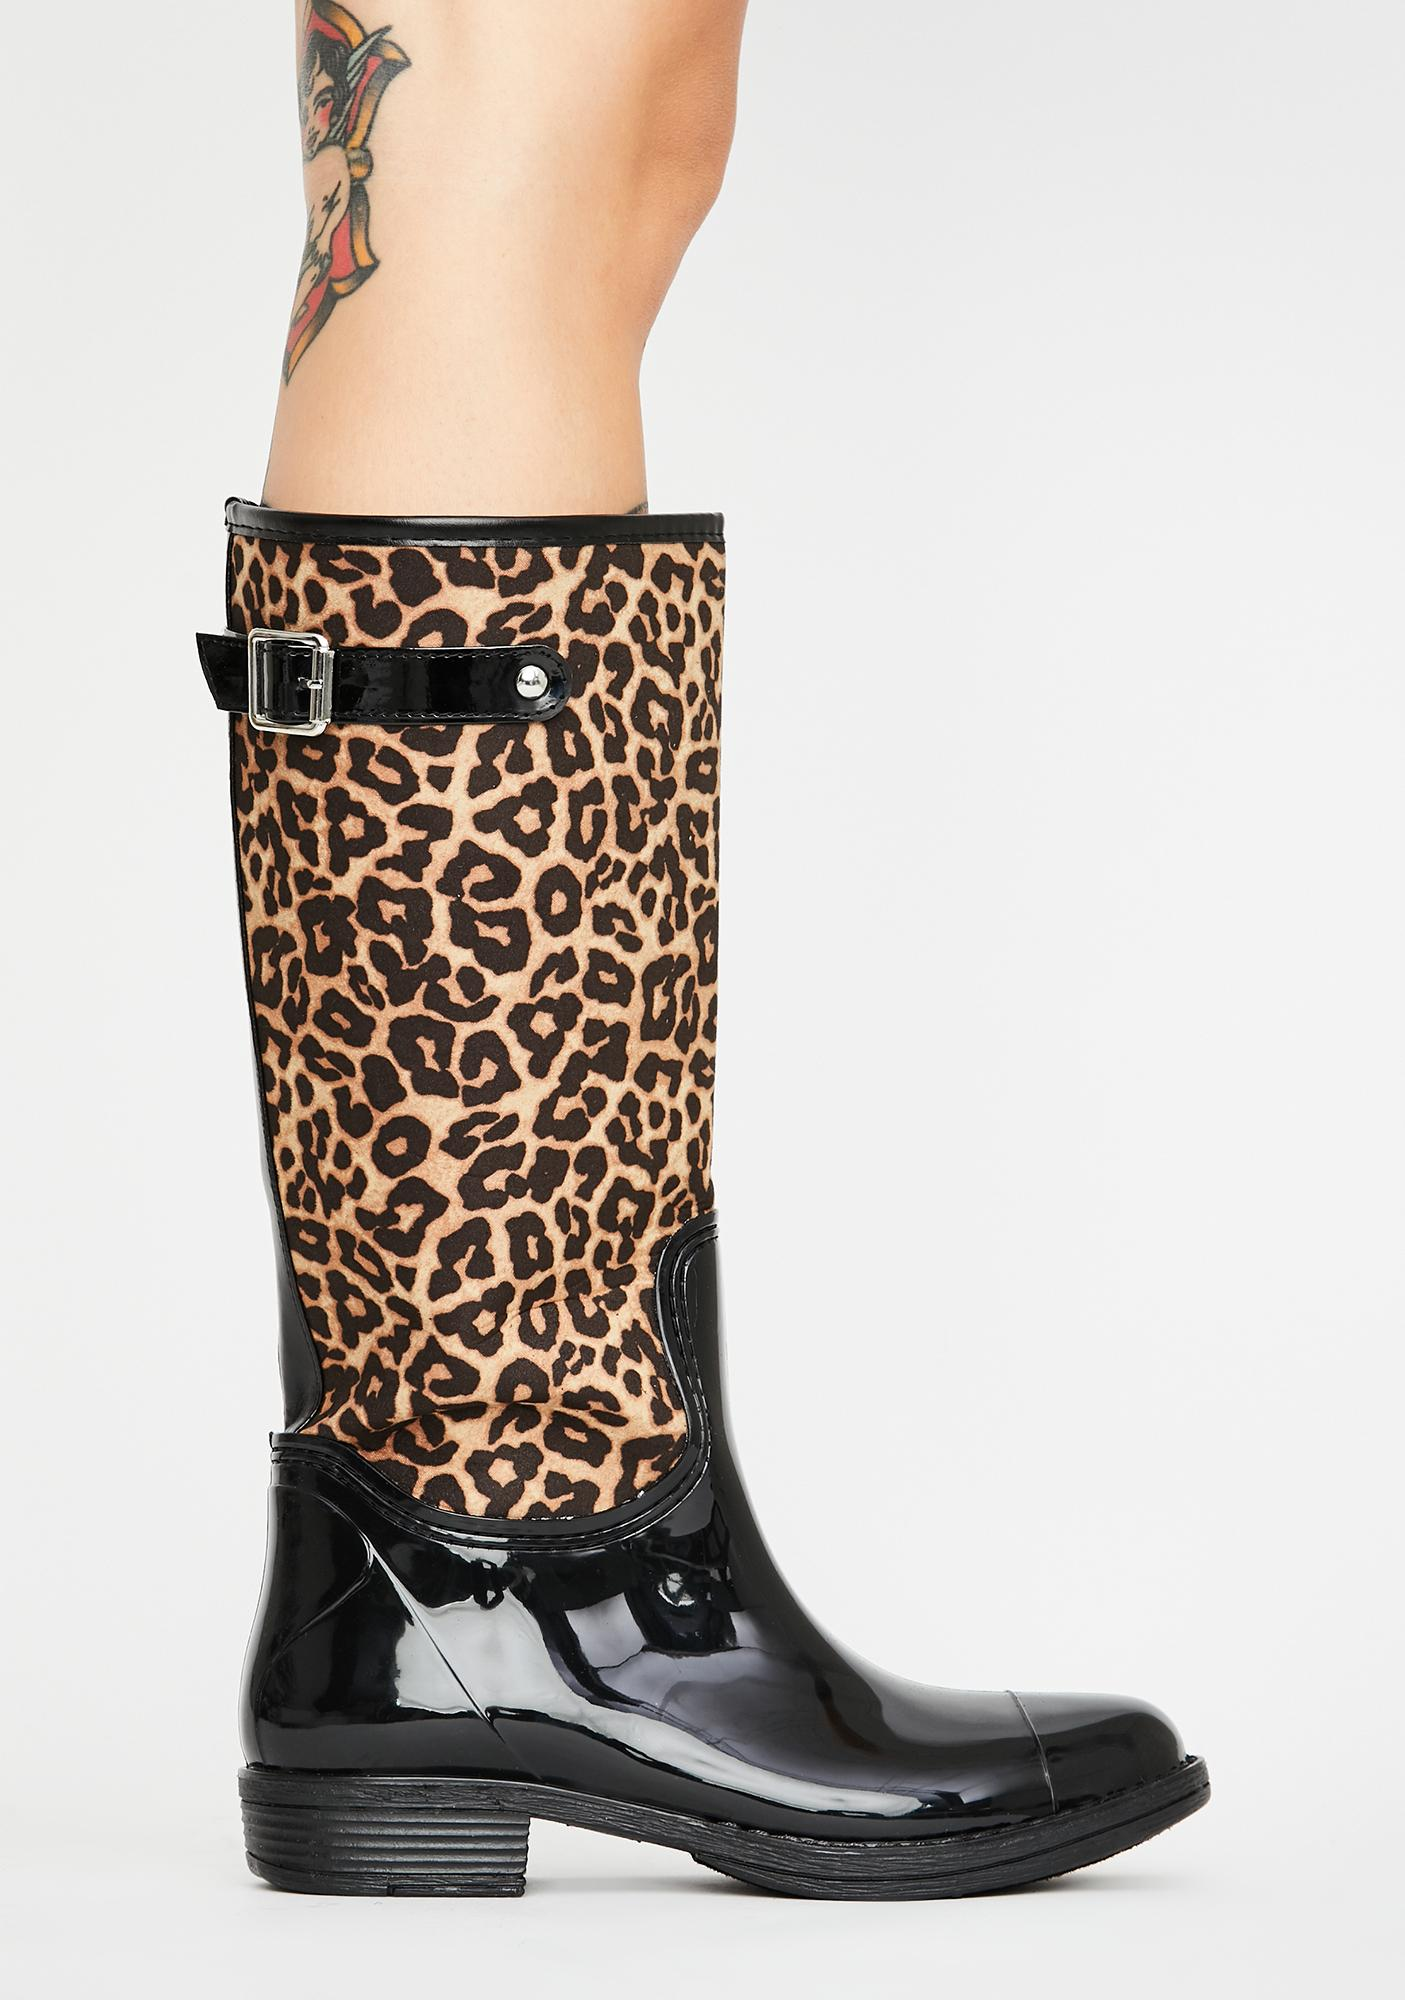 Catty Whatever The Weather Rain Boots